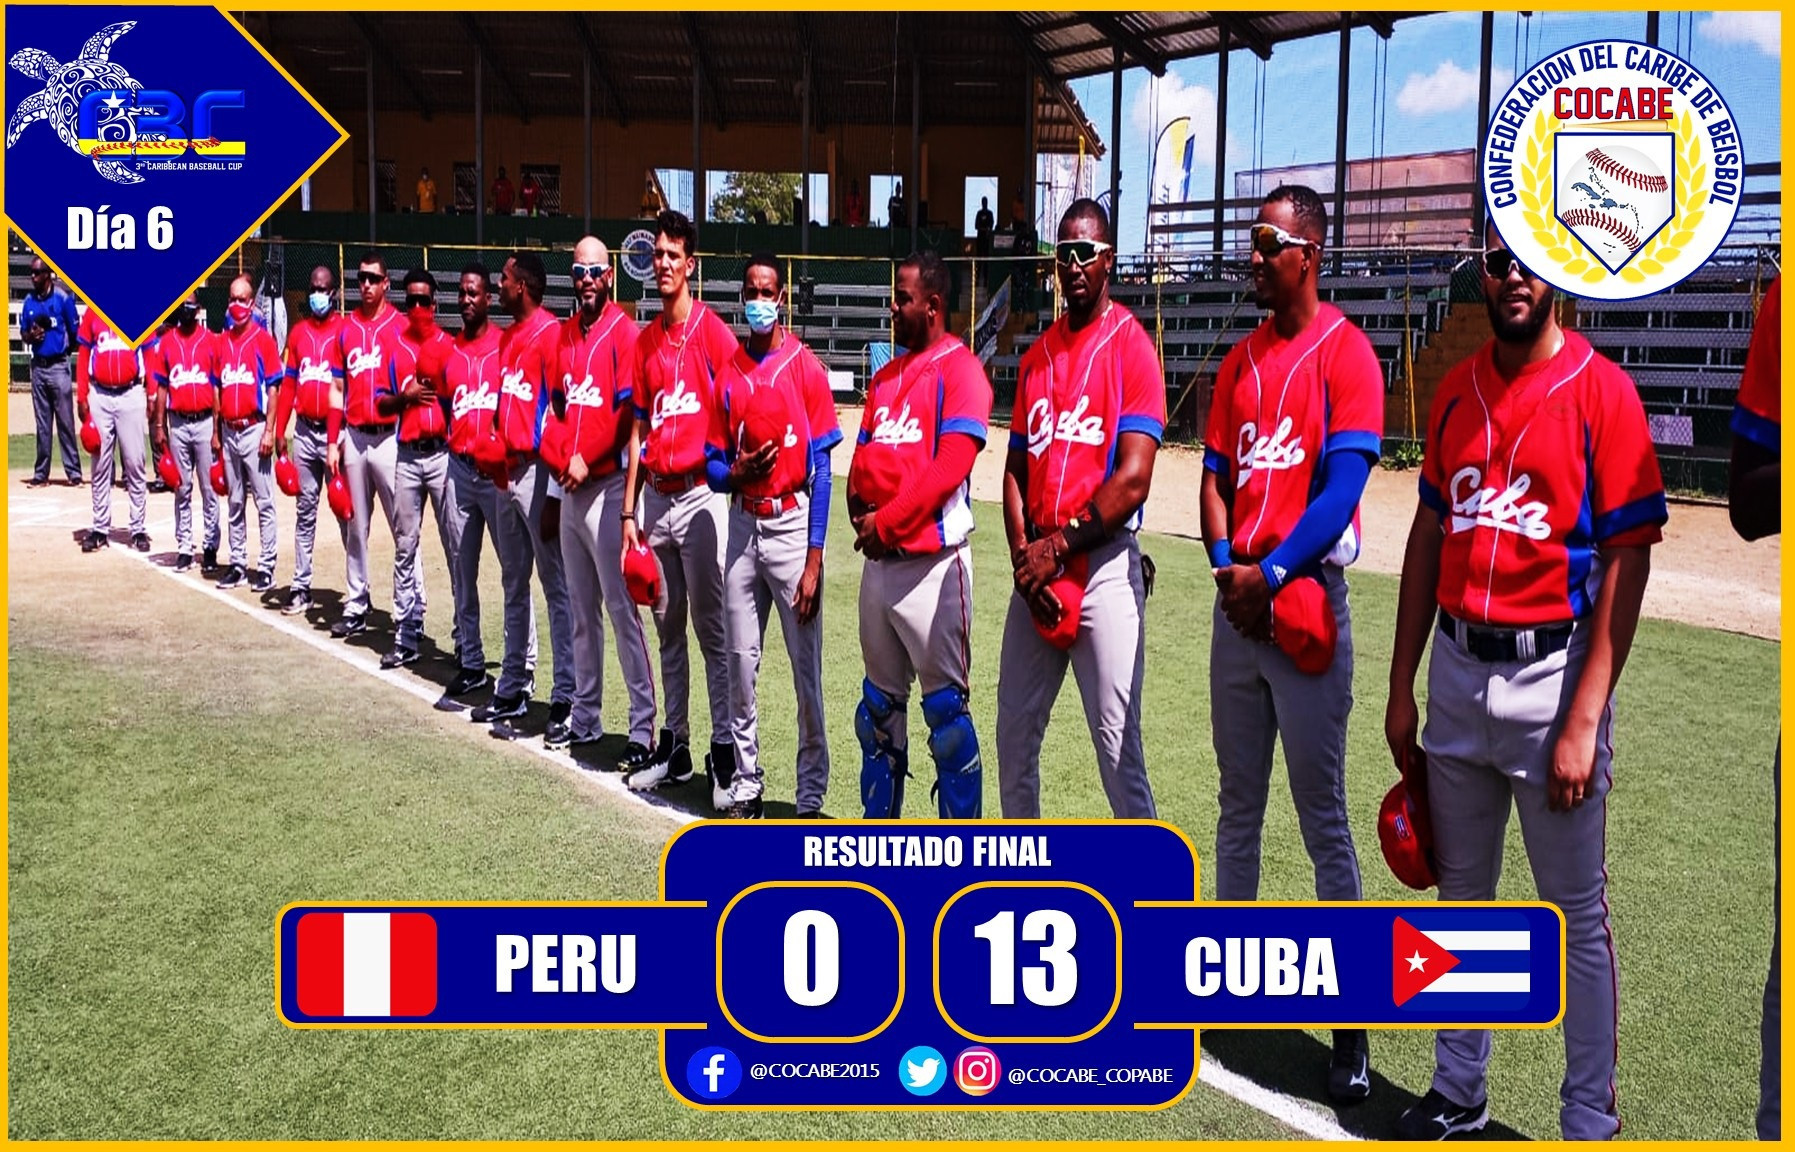 Cuba powered to victory over Peru at the Caribbean Baseball Cup ©COCABE